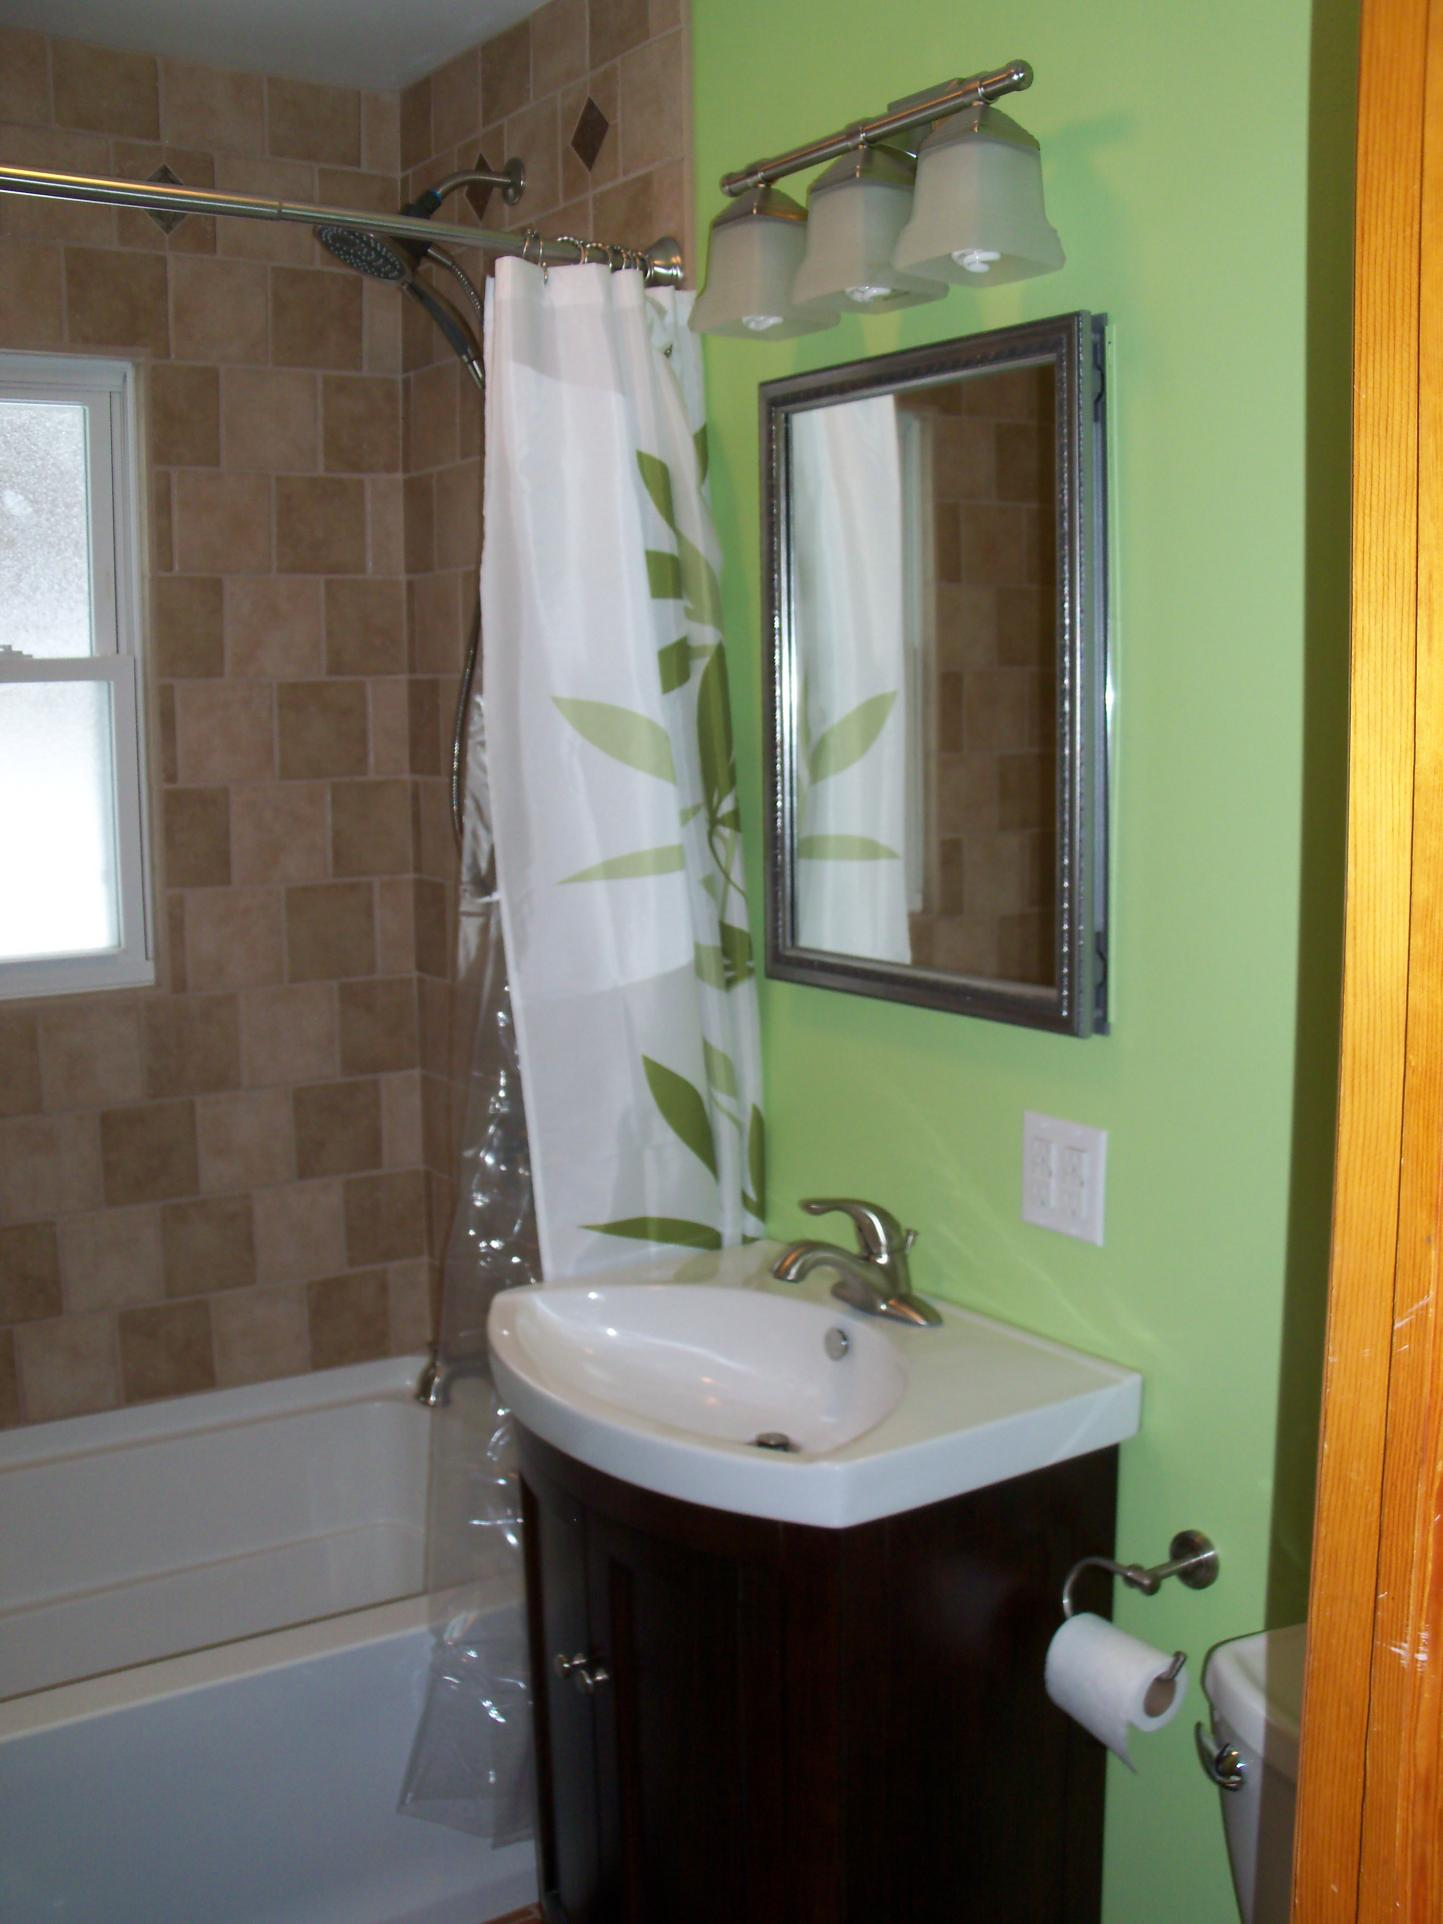 Bath Remodel Before And After Kitchens Baths Contractor Talk - 2 day bathroom remodel